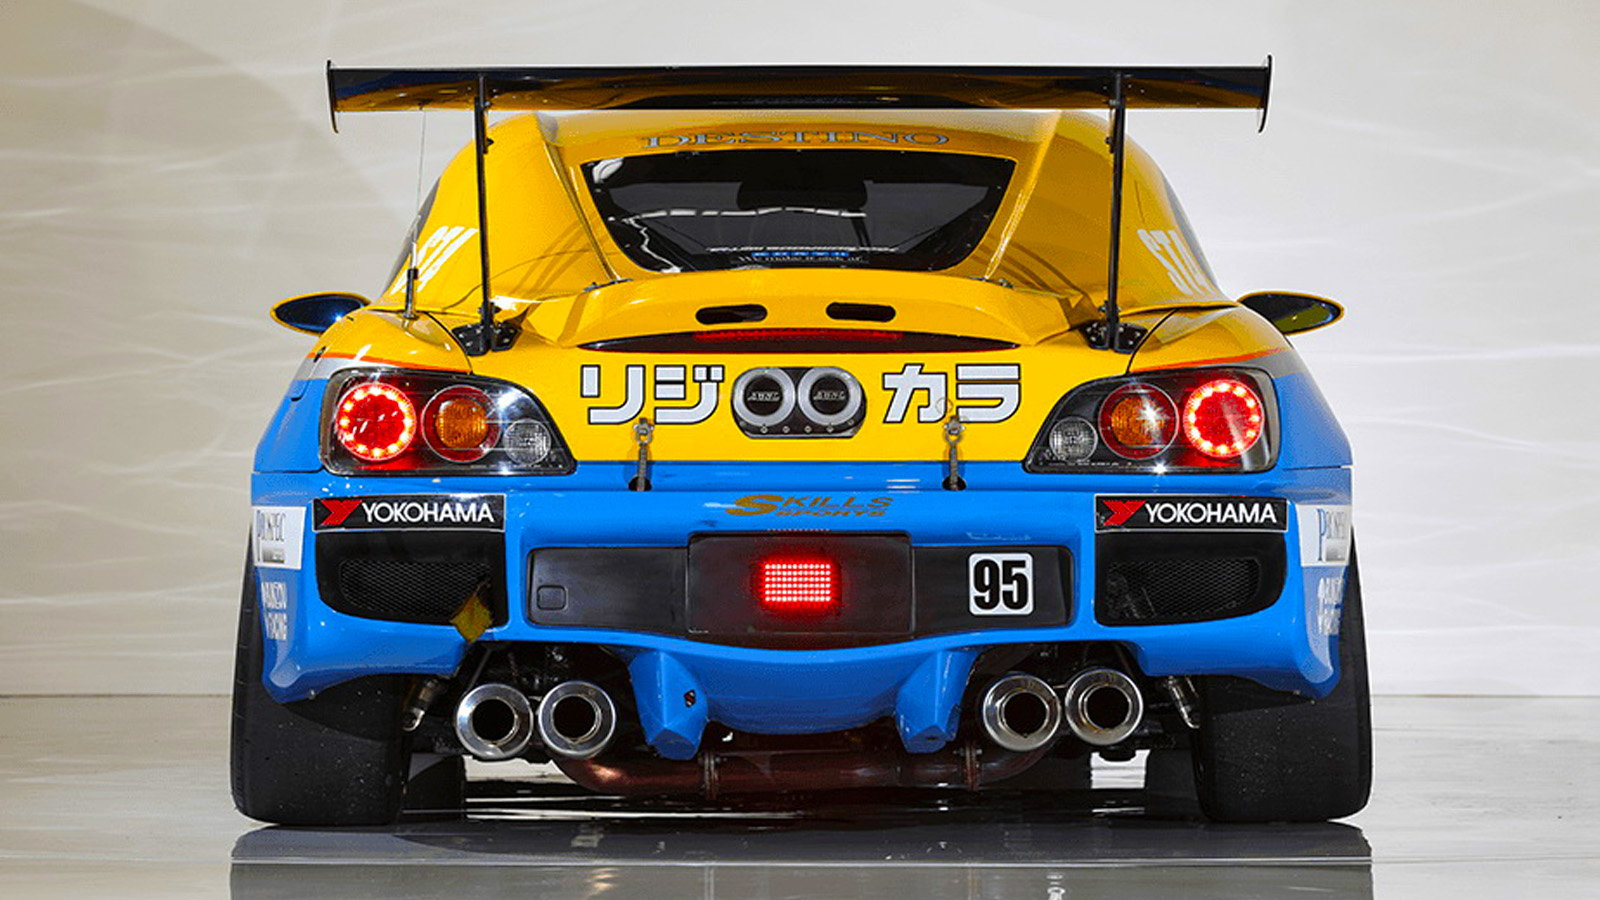 Spoon S2000 and NSX Make Us Pine For the Cars of Yesteryears